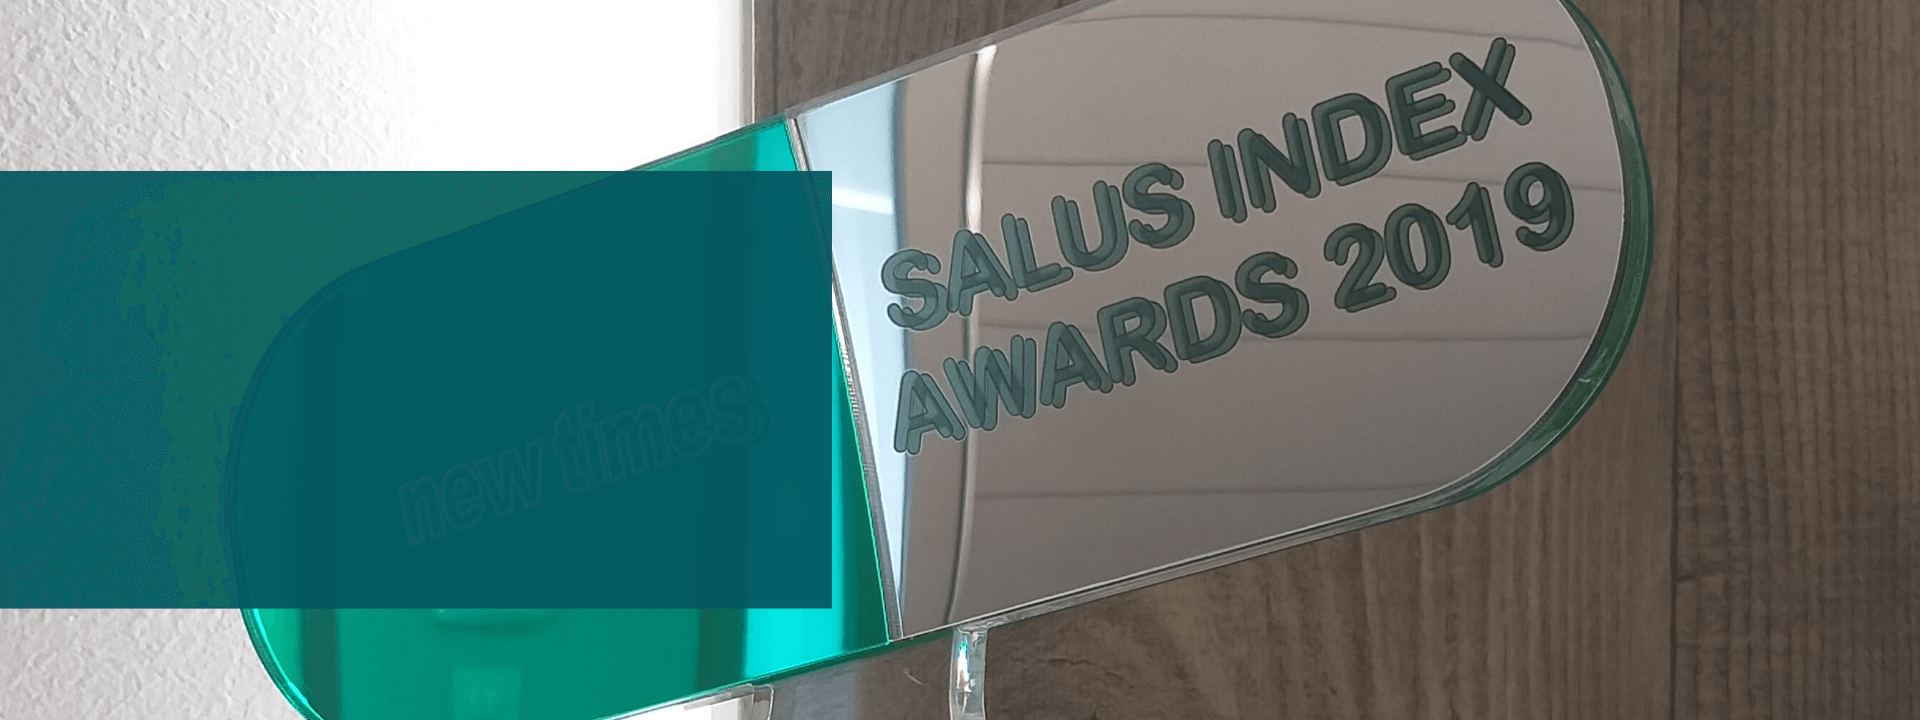 salus awards_anastasakis hair clinic